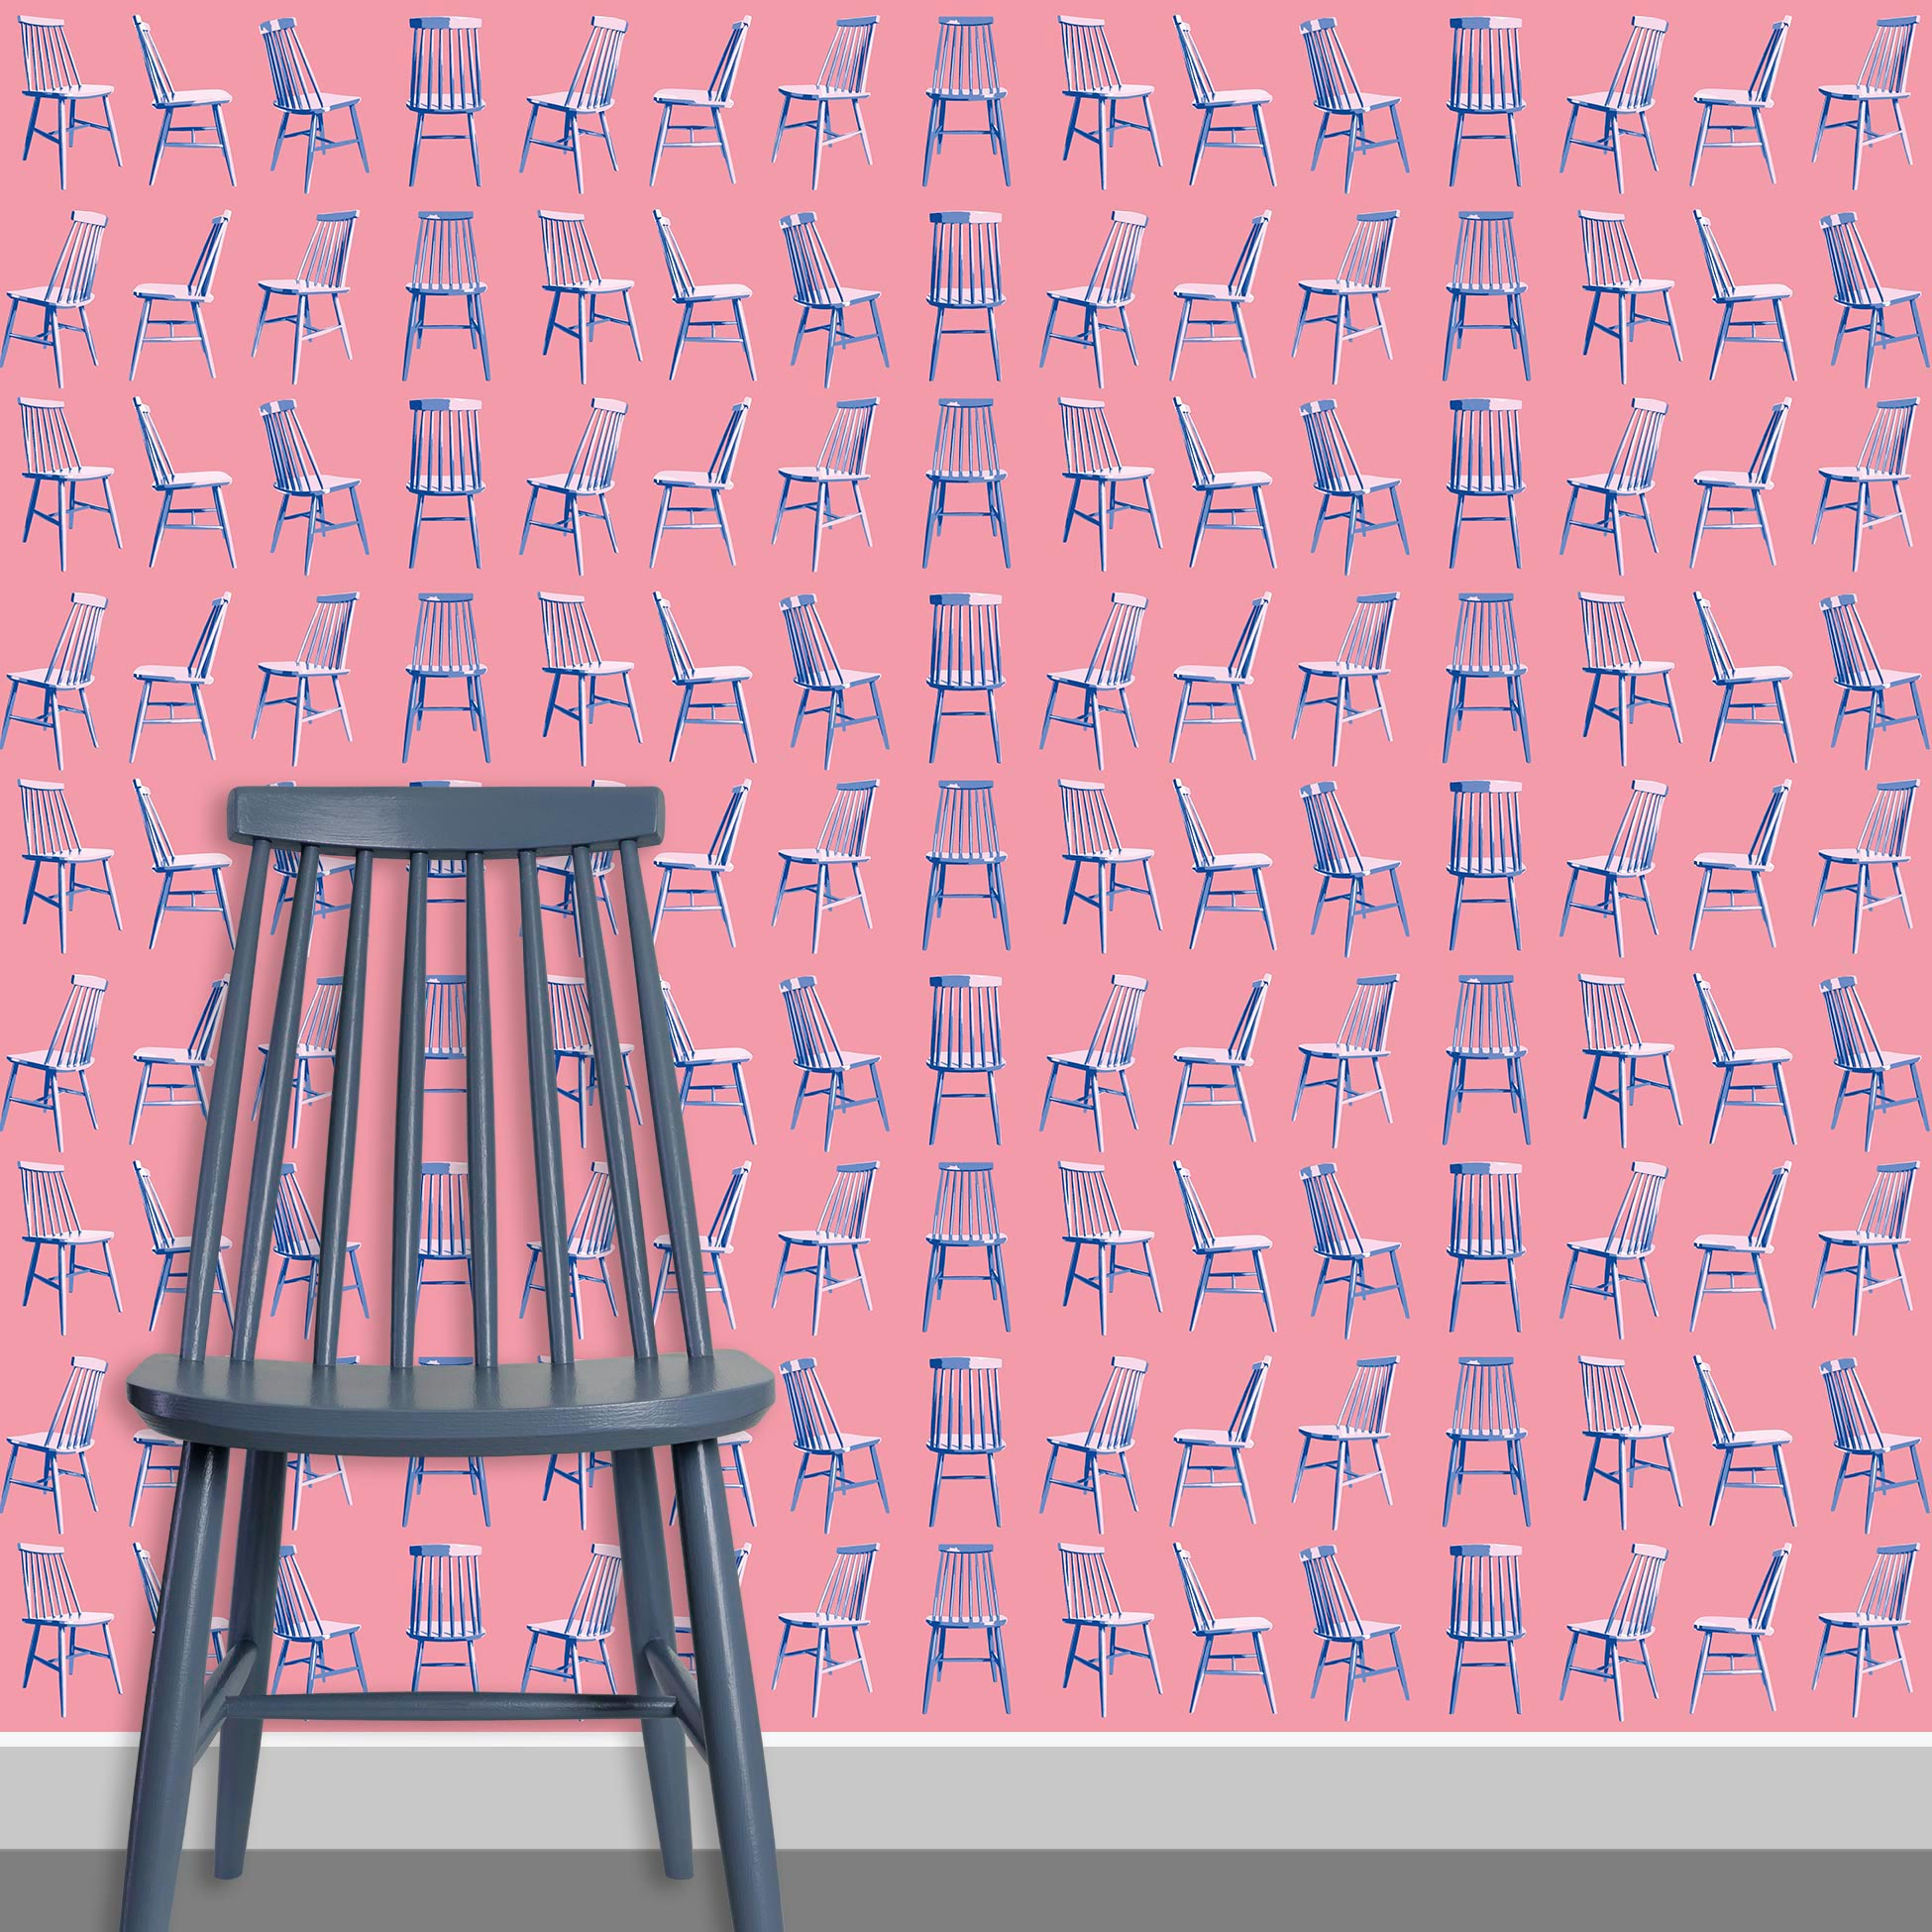 Contact Page Square - Mid Century Modern Chairs Pattern Design 3